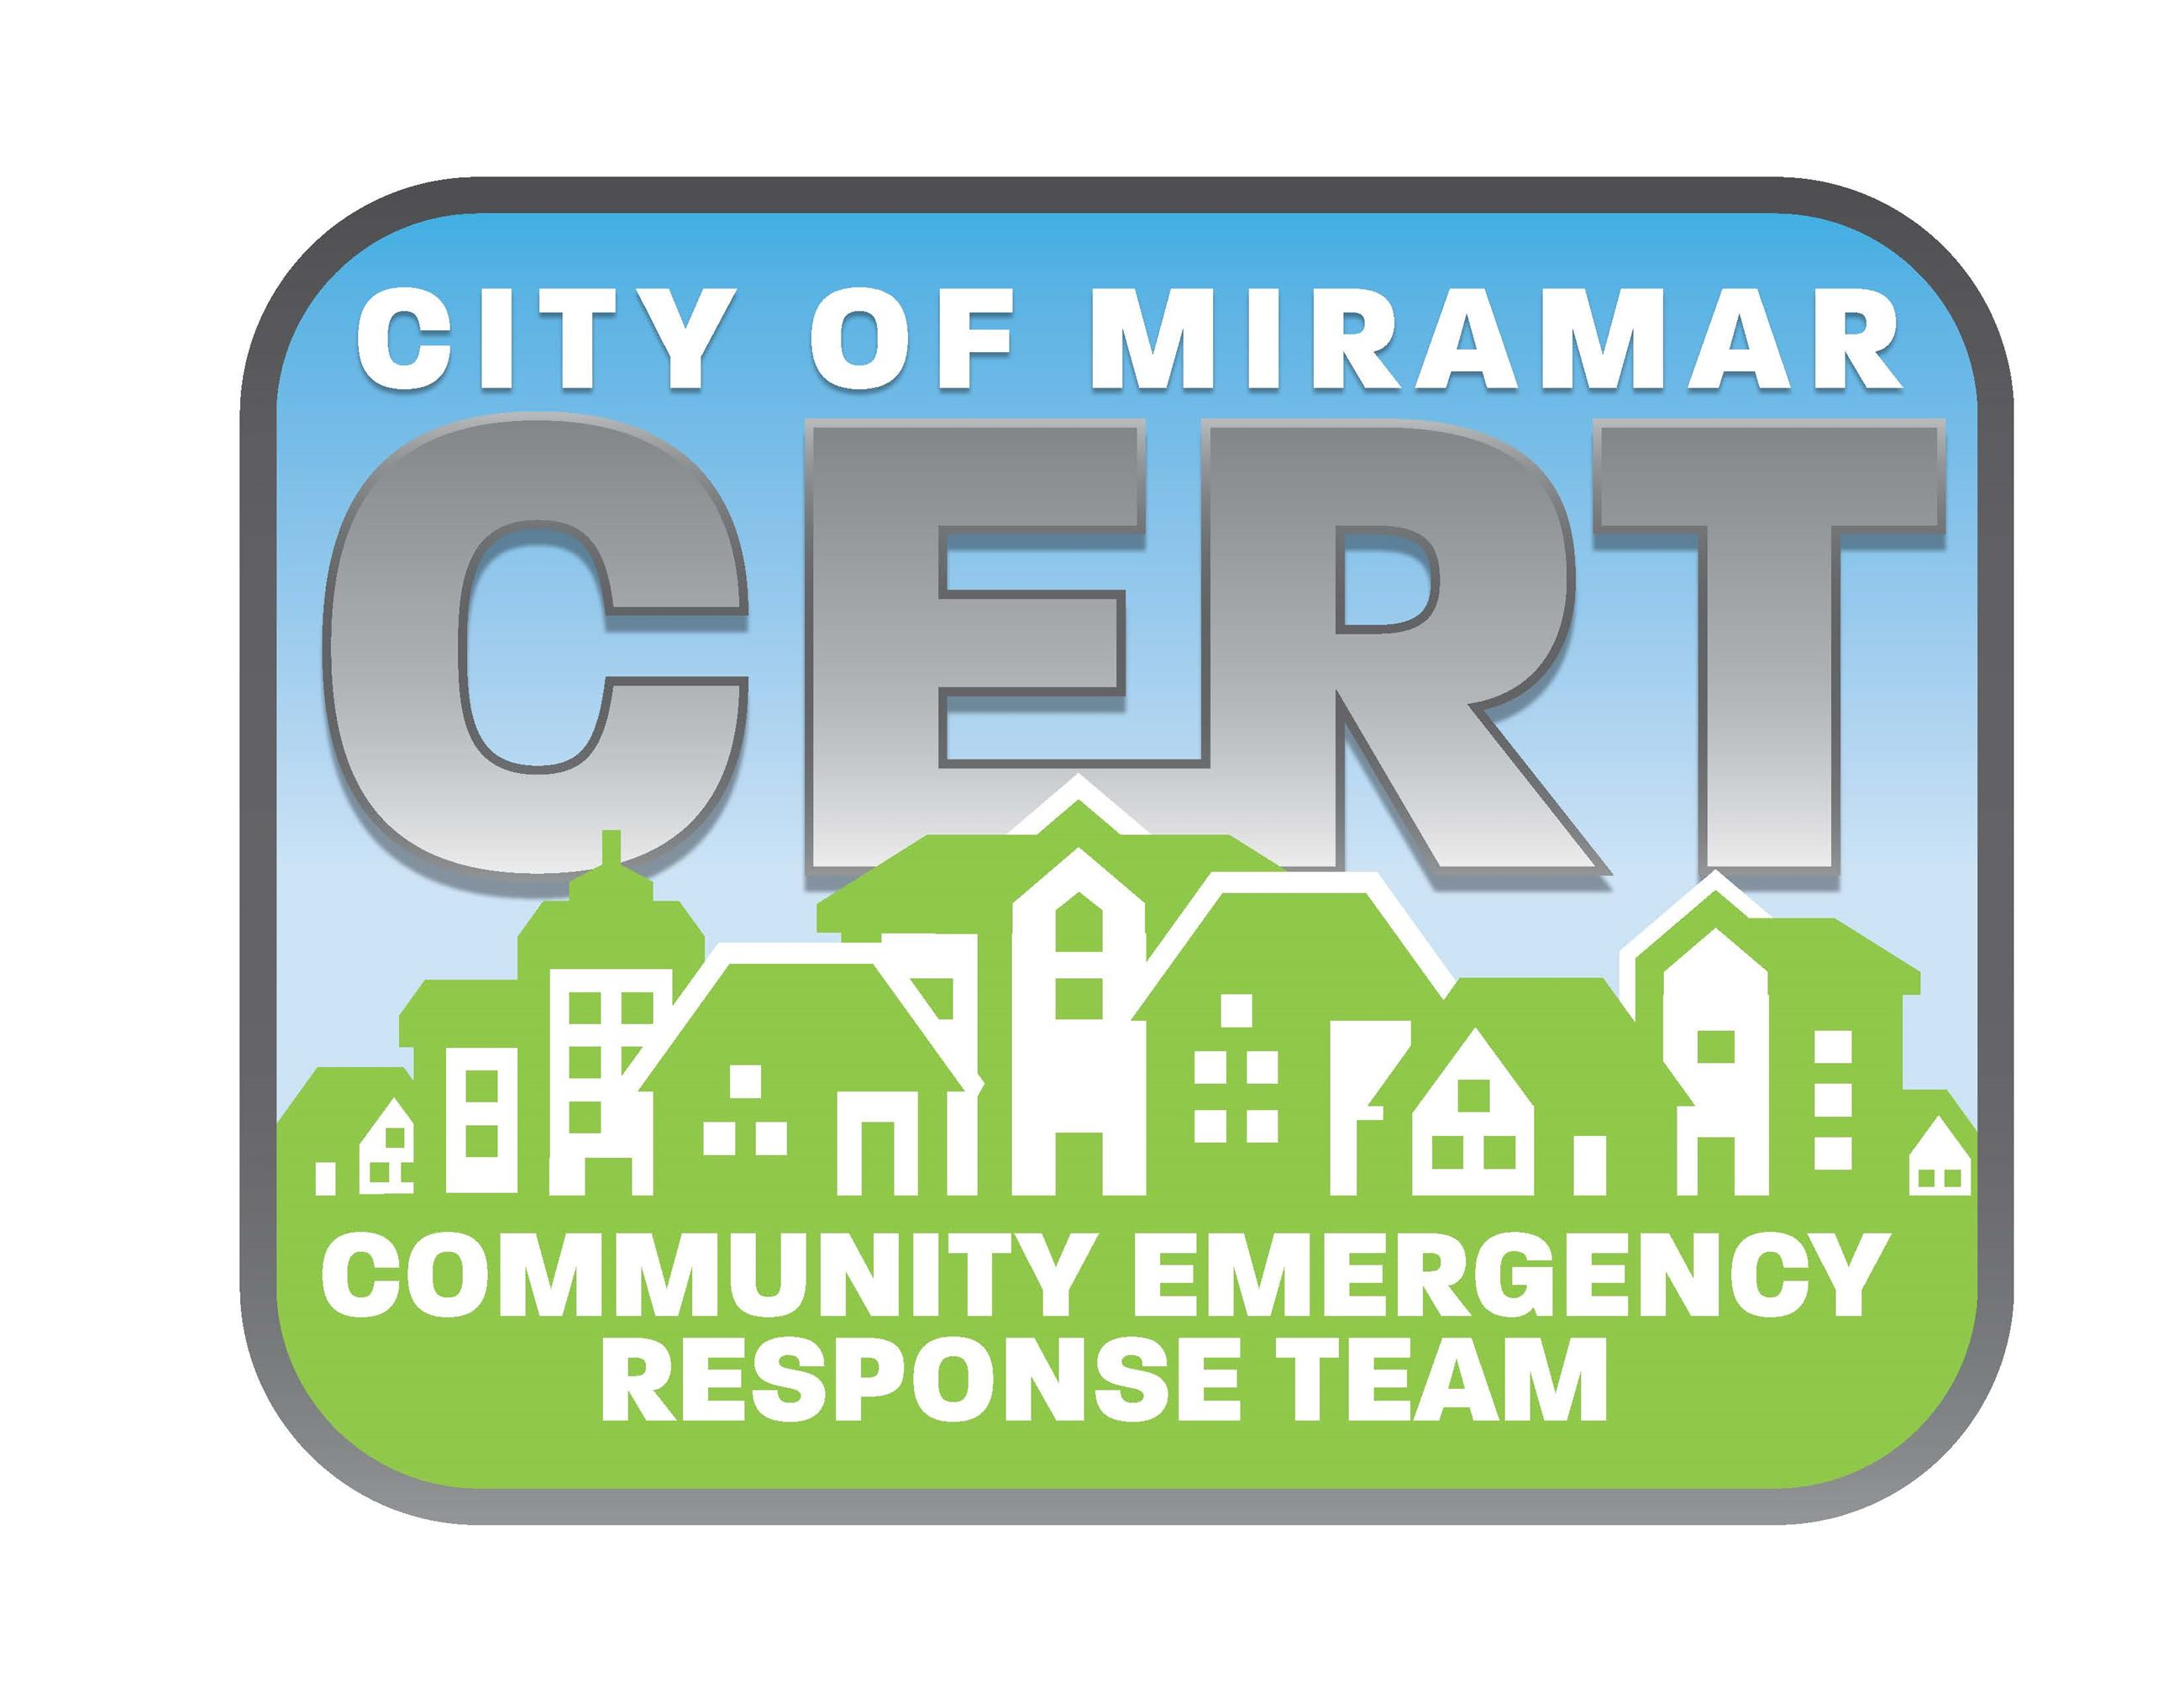 Them In Basic Disaster Response Skills Such As Fire Safety Light Search And Rescue Team Organization Medical Operations CERT Logo